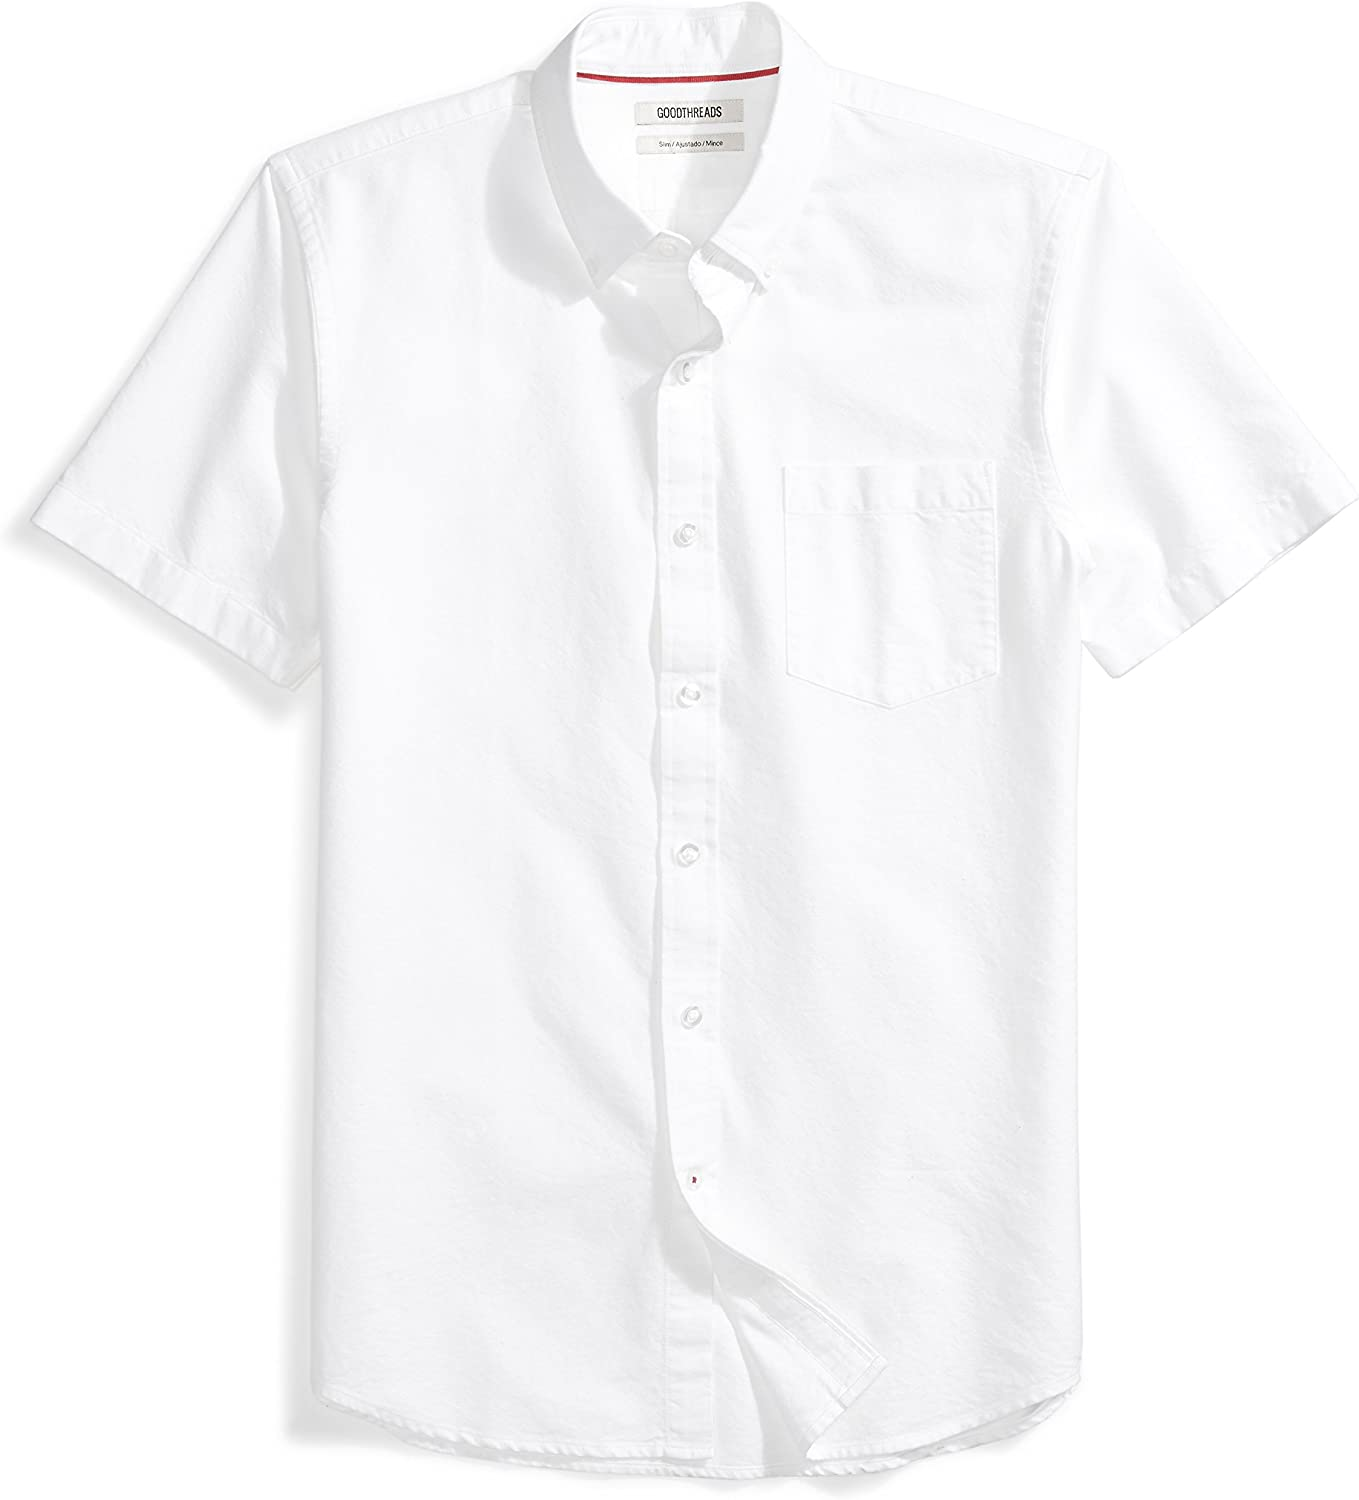 Amazon Brand - Goodthreads Men's Slim-Fit Short-Sleeve Solid Oxford Shirt with Pocket